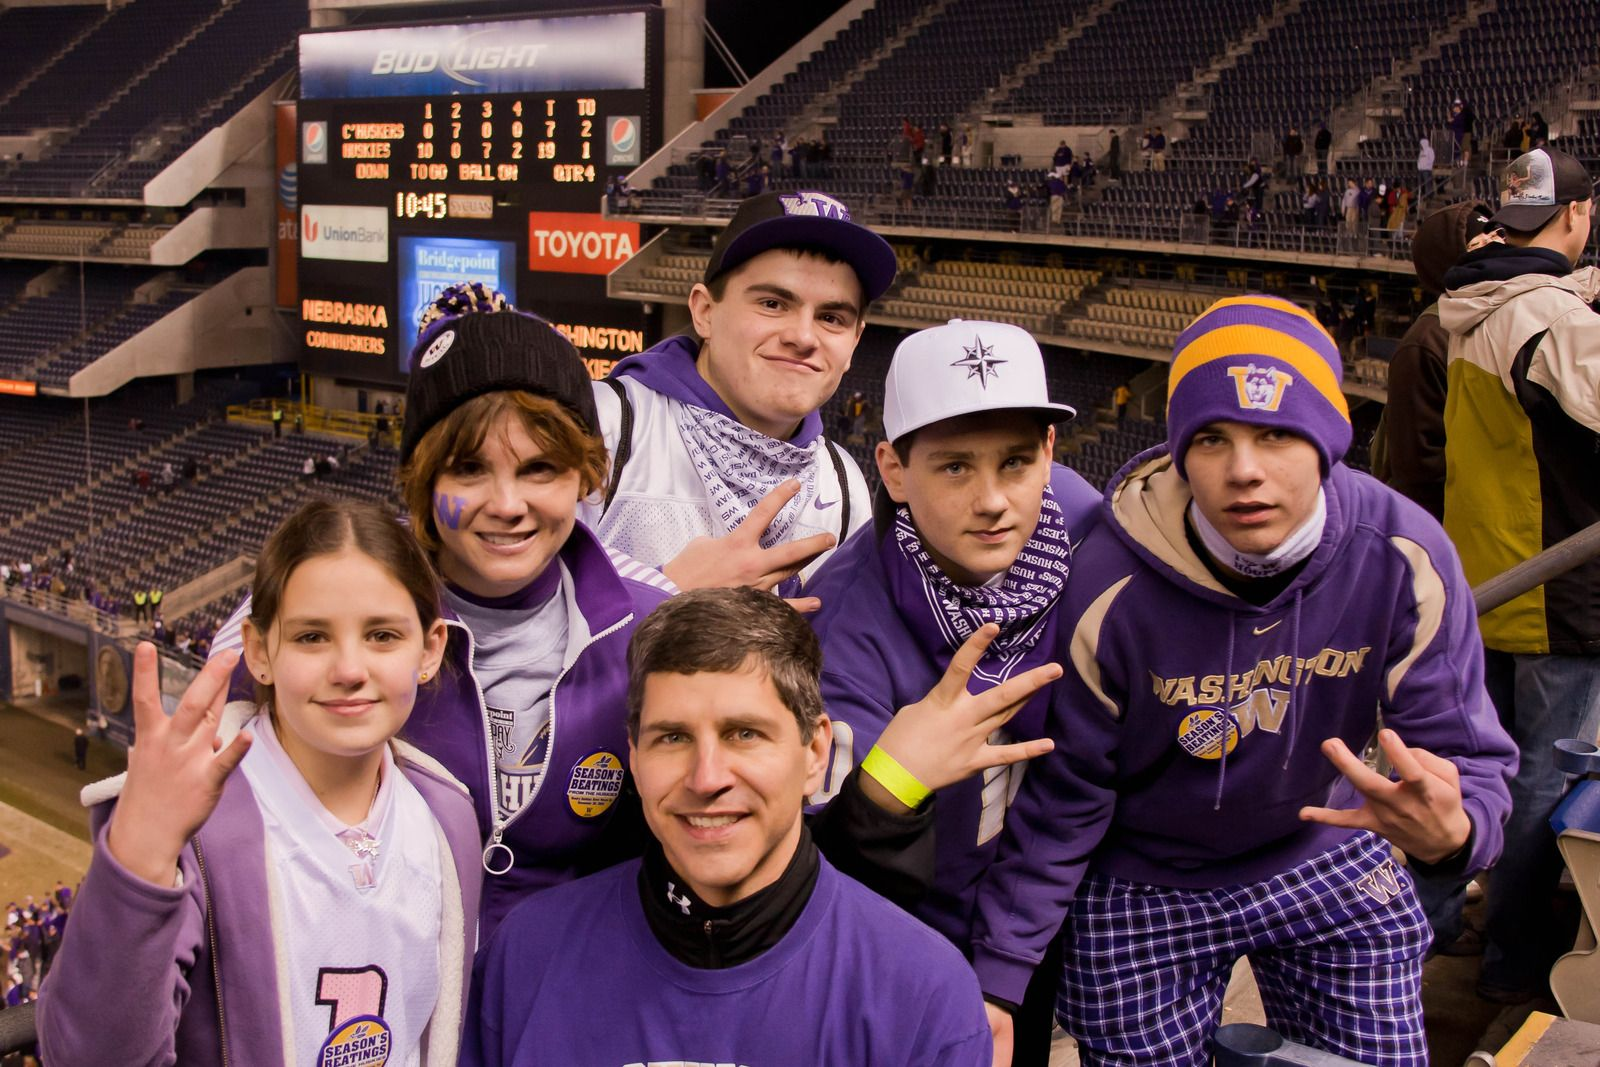 Husky fans enjoying the Holiday Bowl. #youW Photo by Jacqueline Riddell